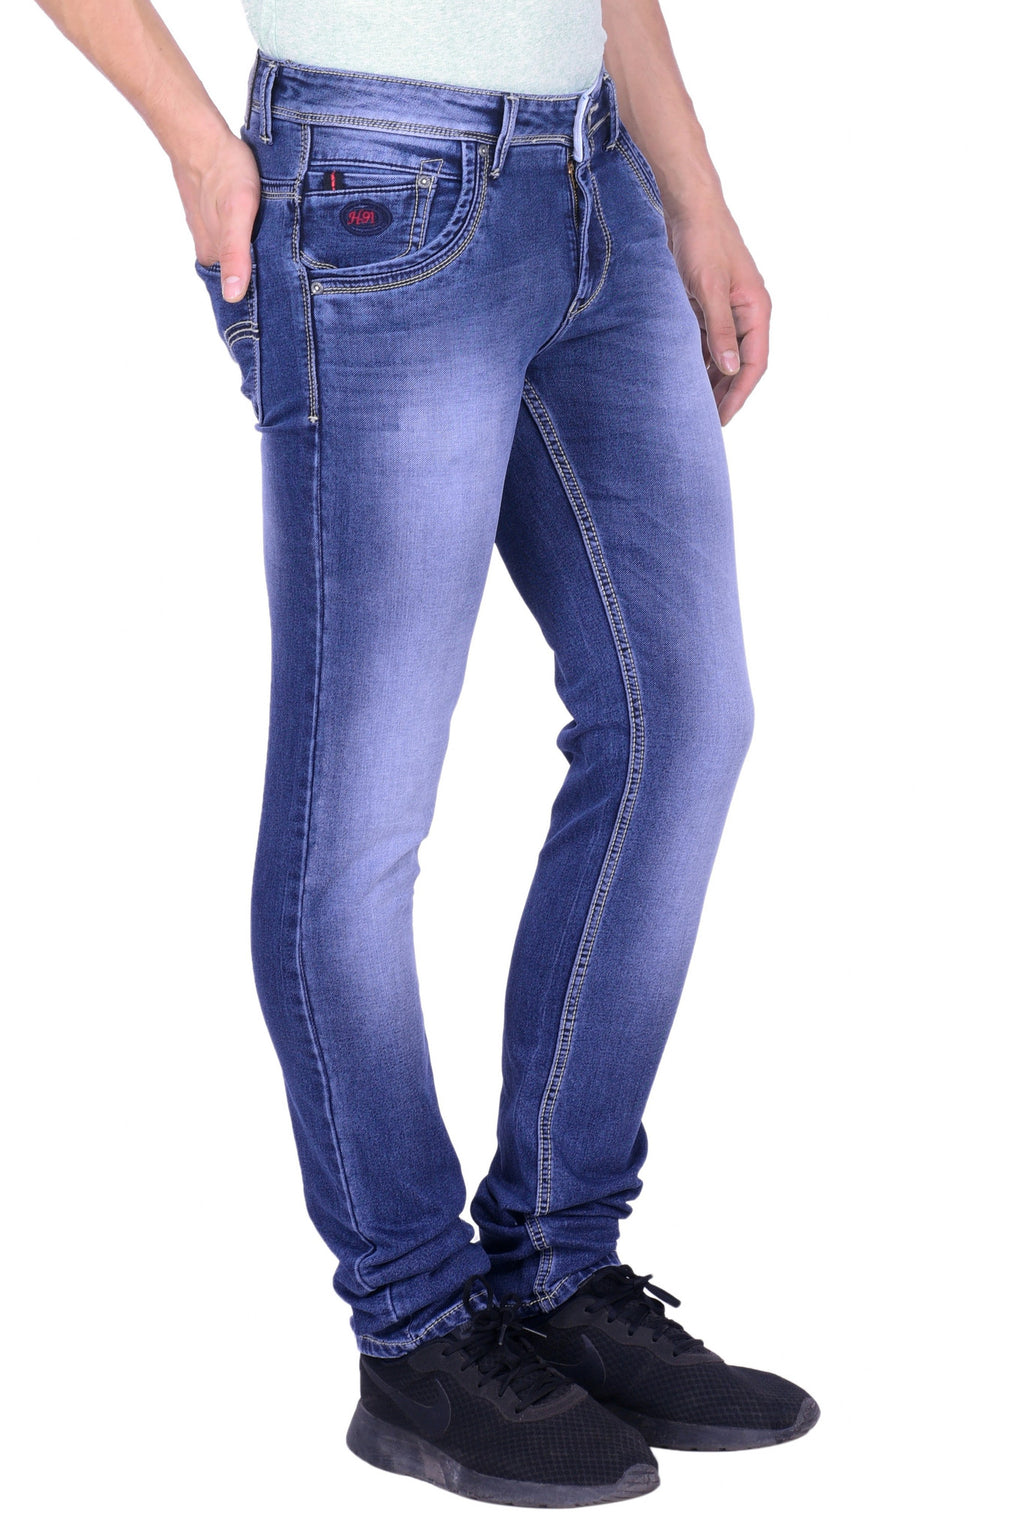 Drill Fit Trendy Denim JH574